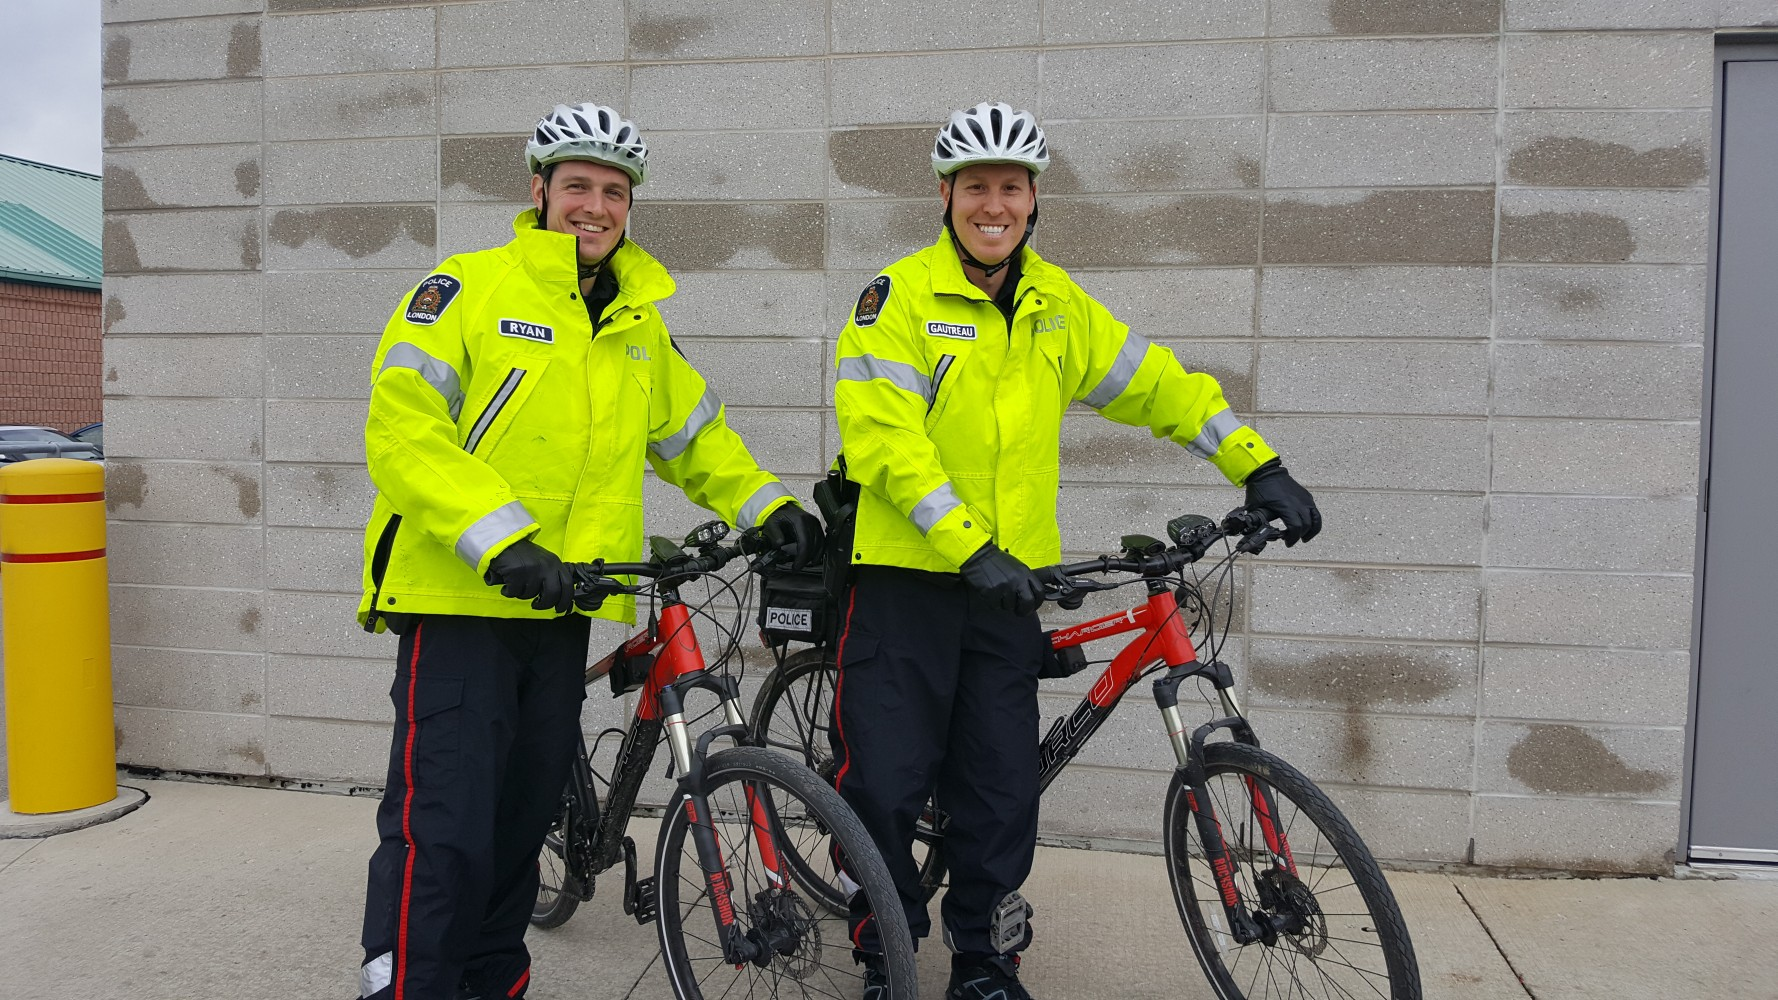 True North Police Cyclist